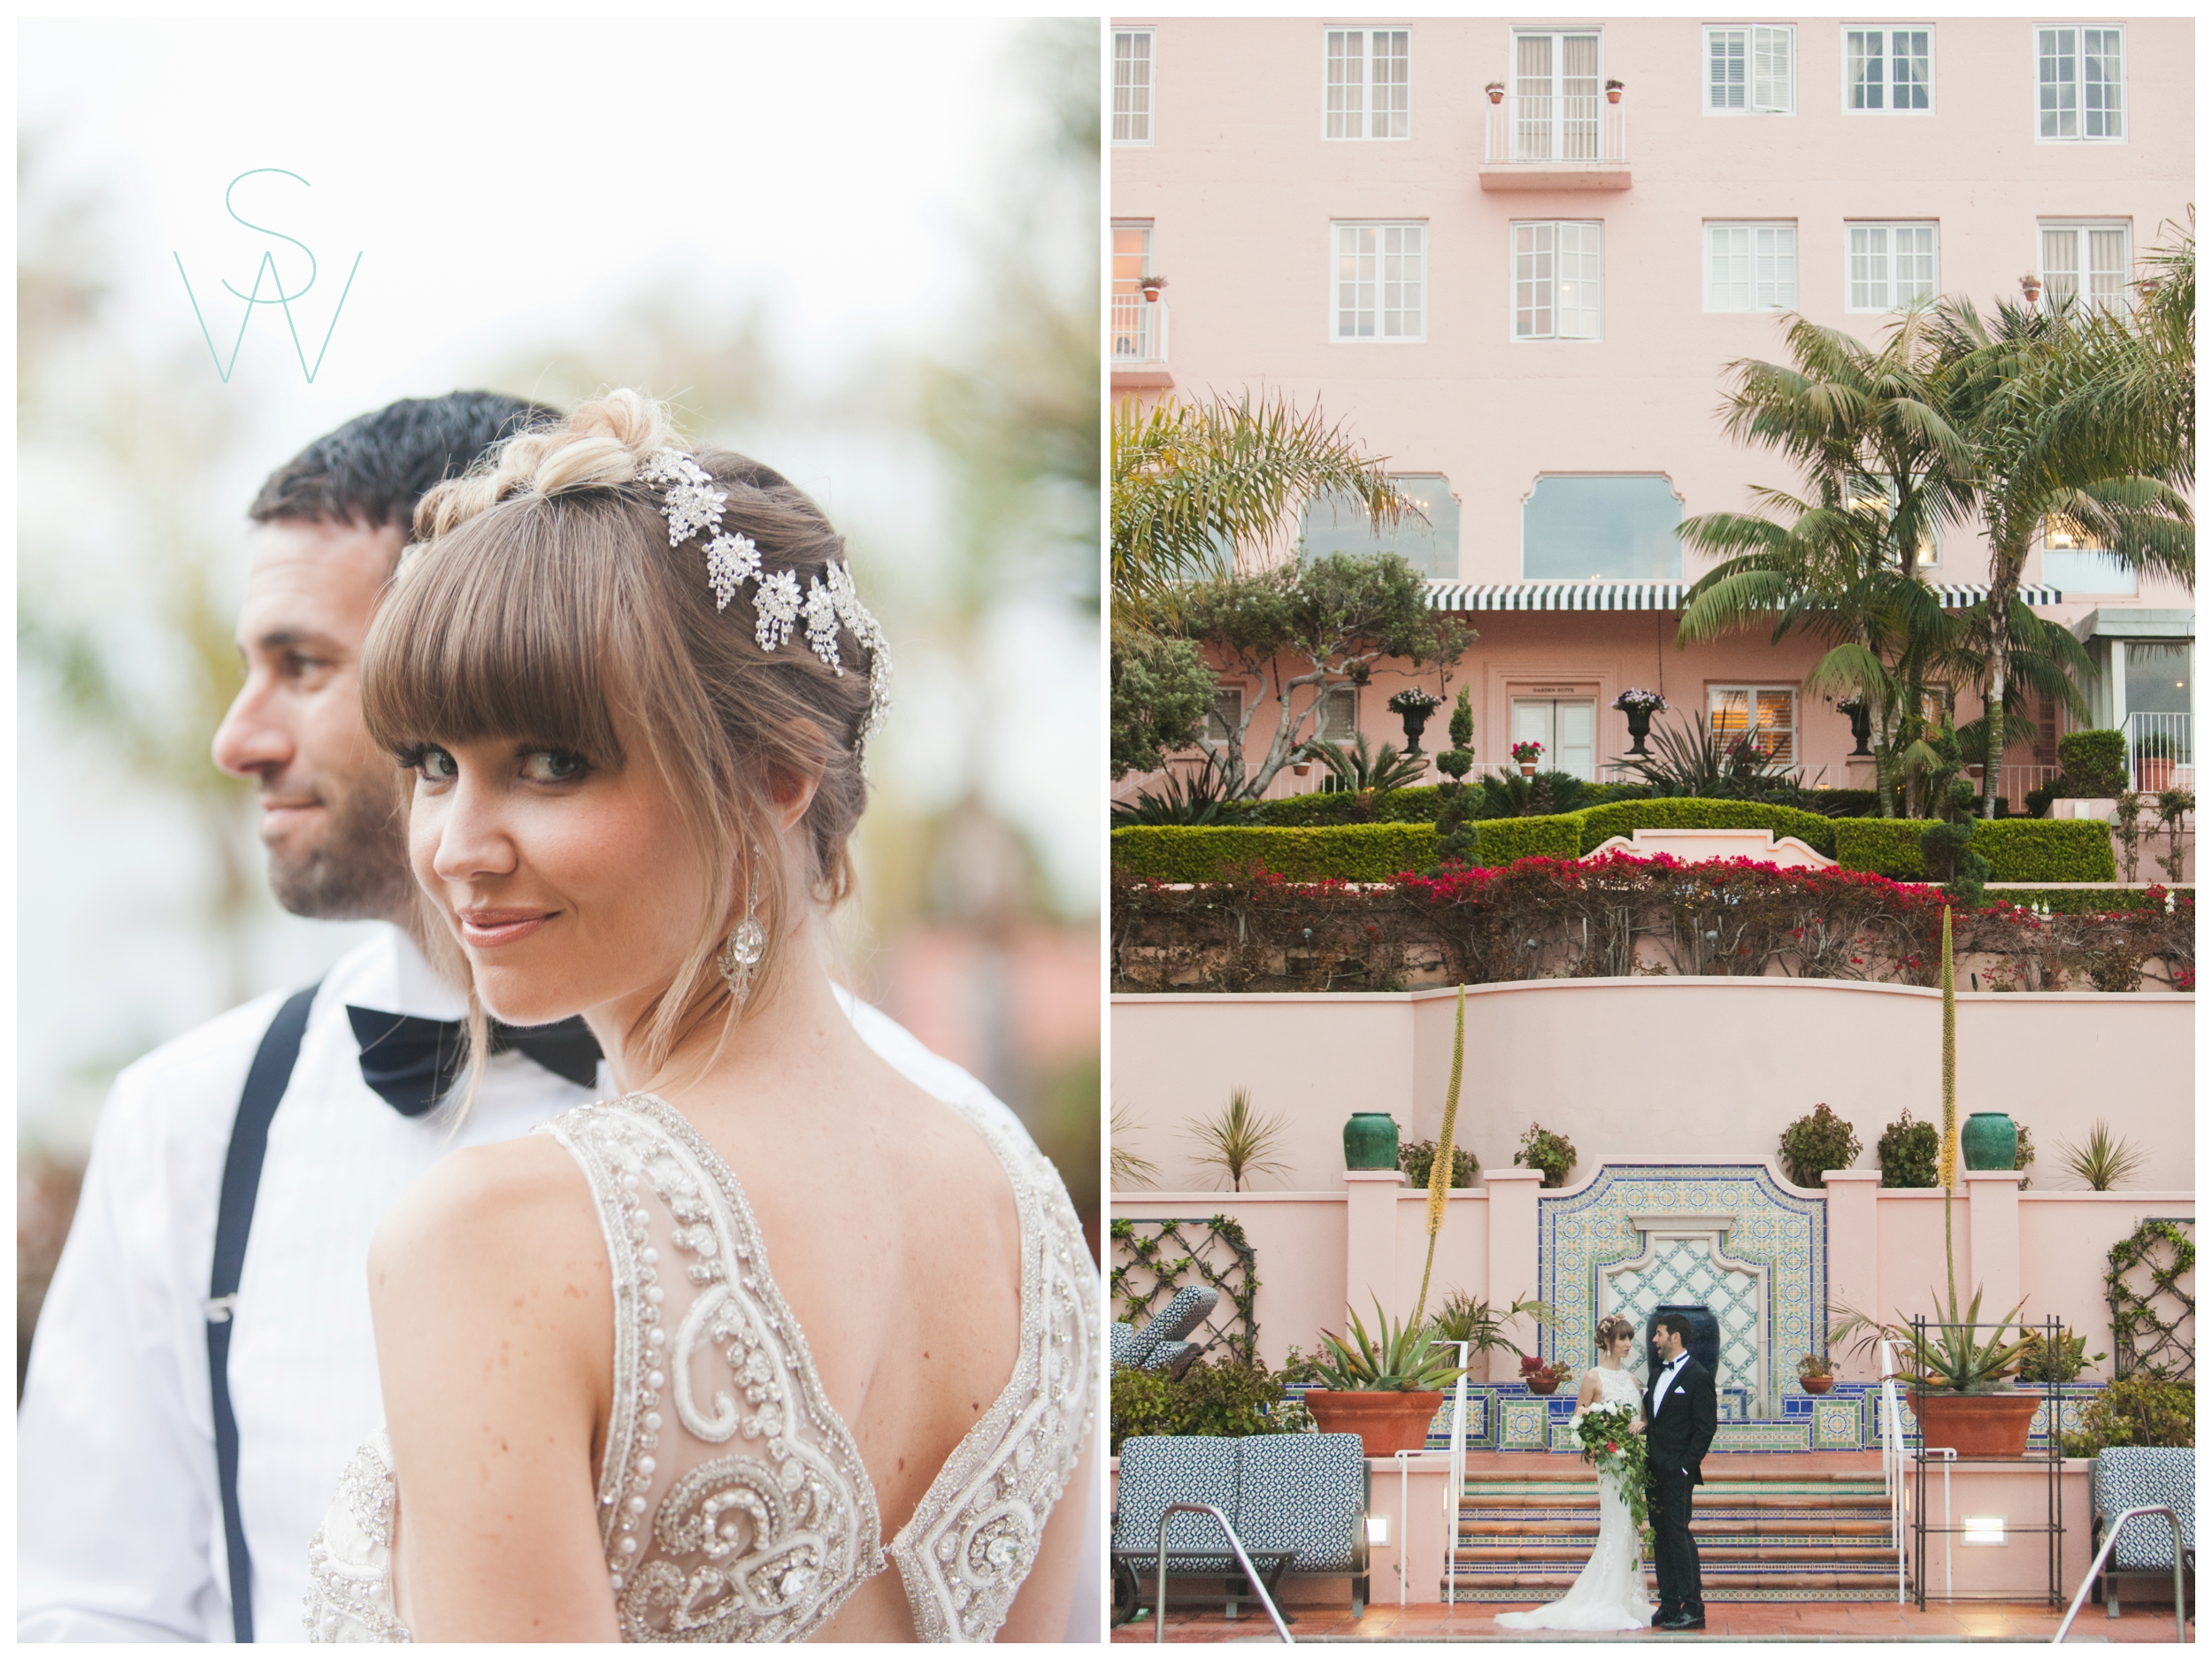 shewanders.wedding.photography.la_.jolla167.jpg.photography.la_.jolla167.jpg